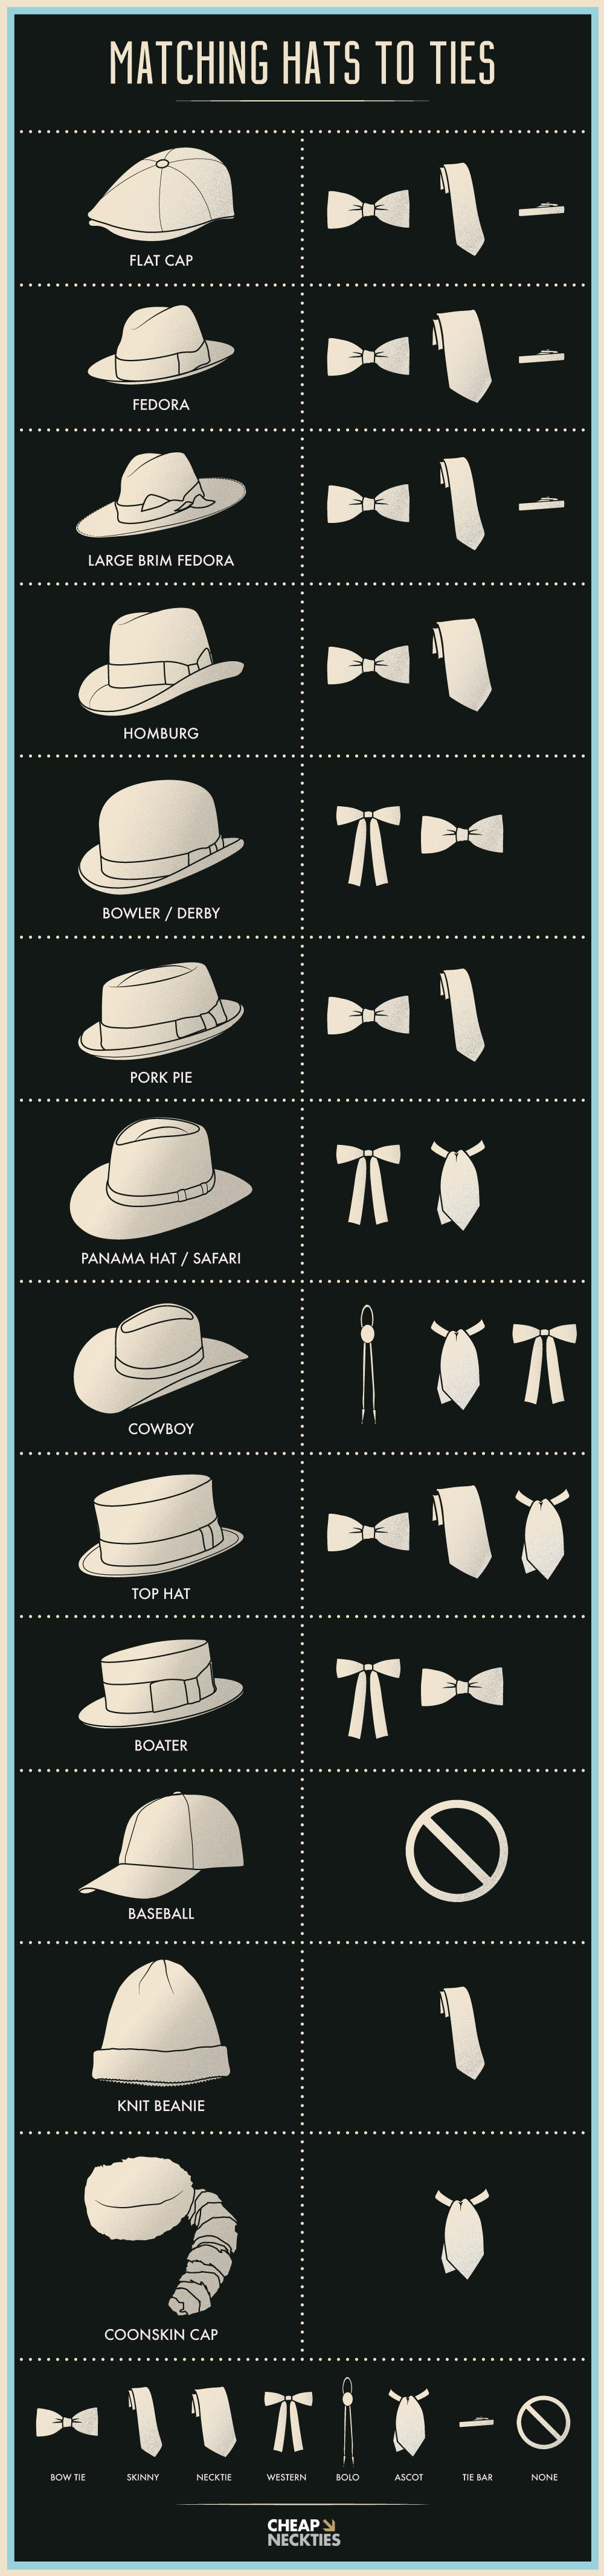 An infographic guide for matching different hat styles to ...